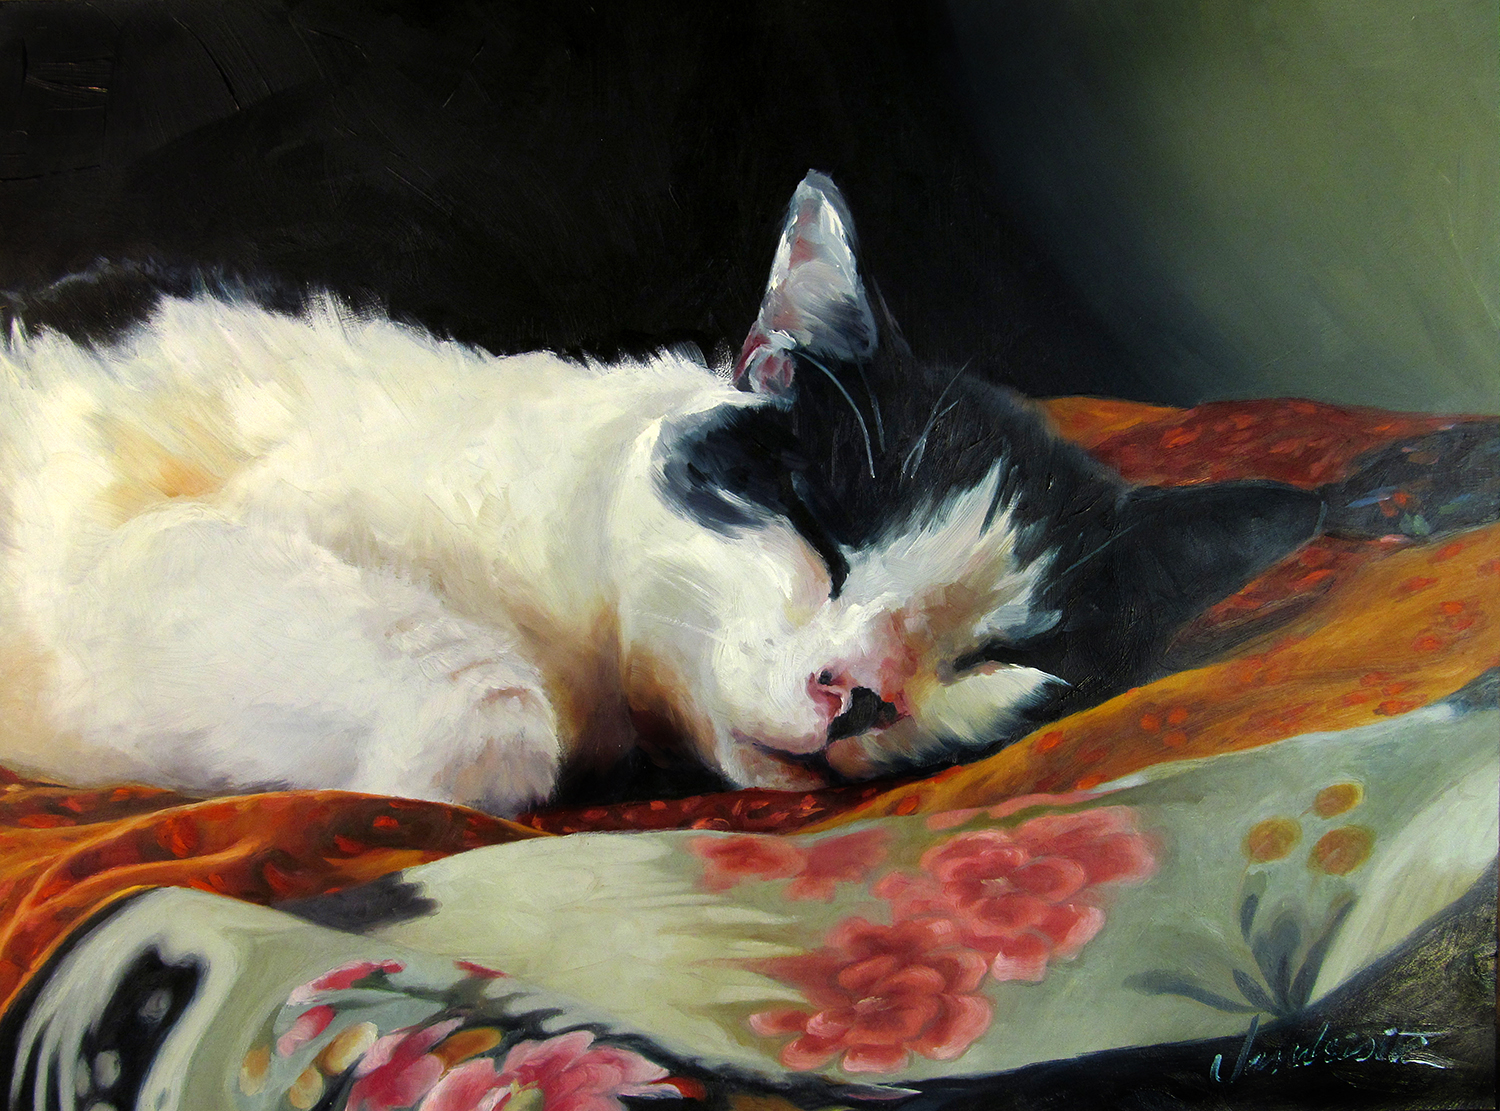 A memorial of my OWN Grace that I painted a few years ago. (Shockingly similar to Jasper… I choose to believe she reincarnated.) Love you forever, Grace Face.